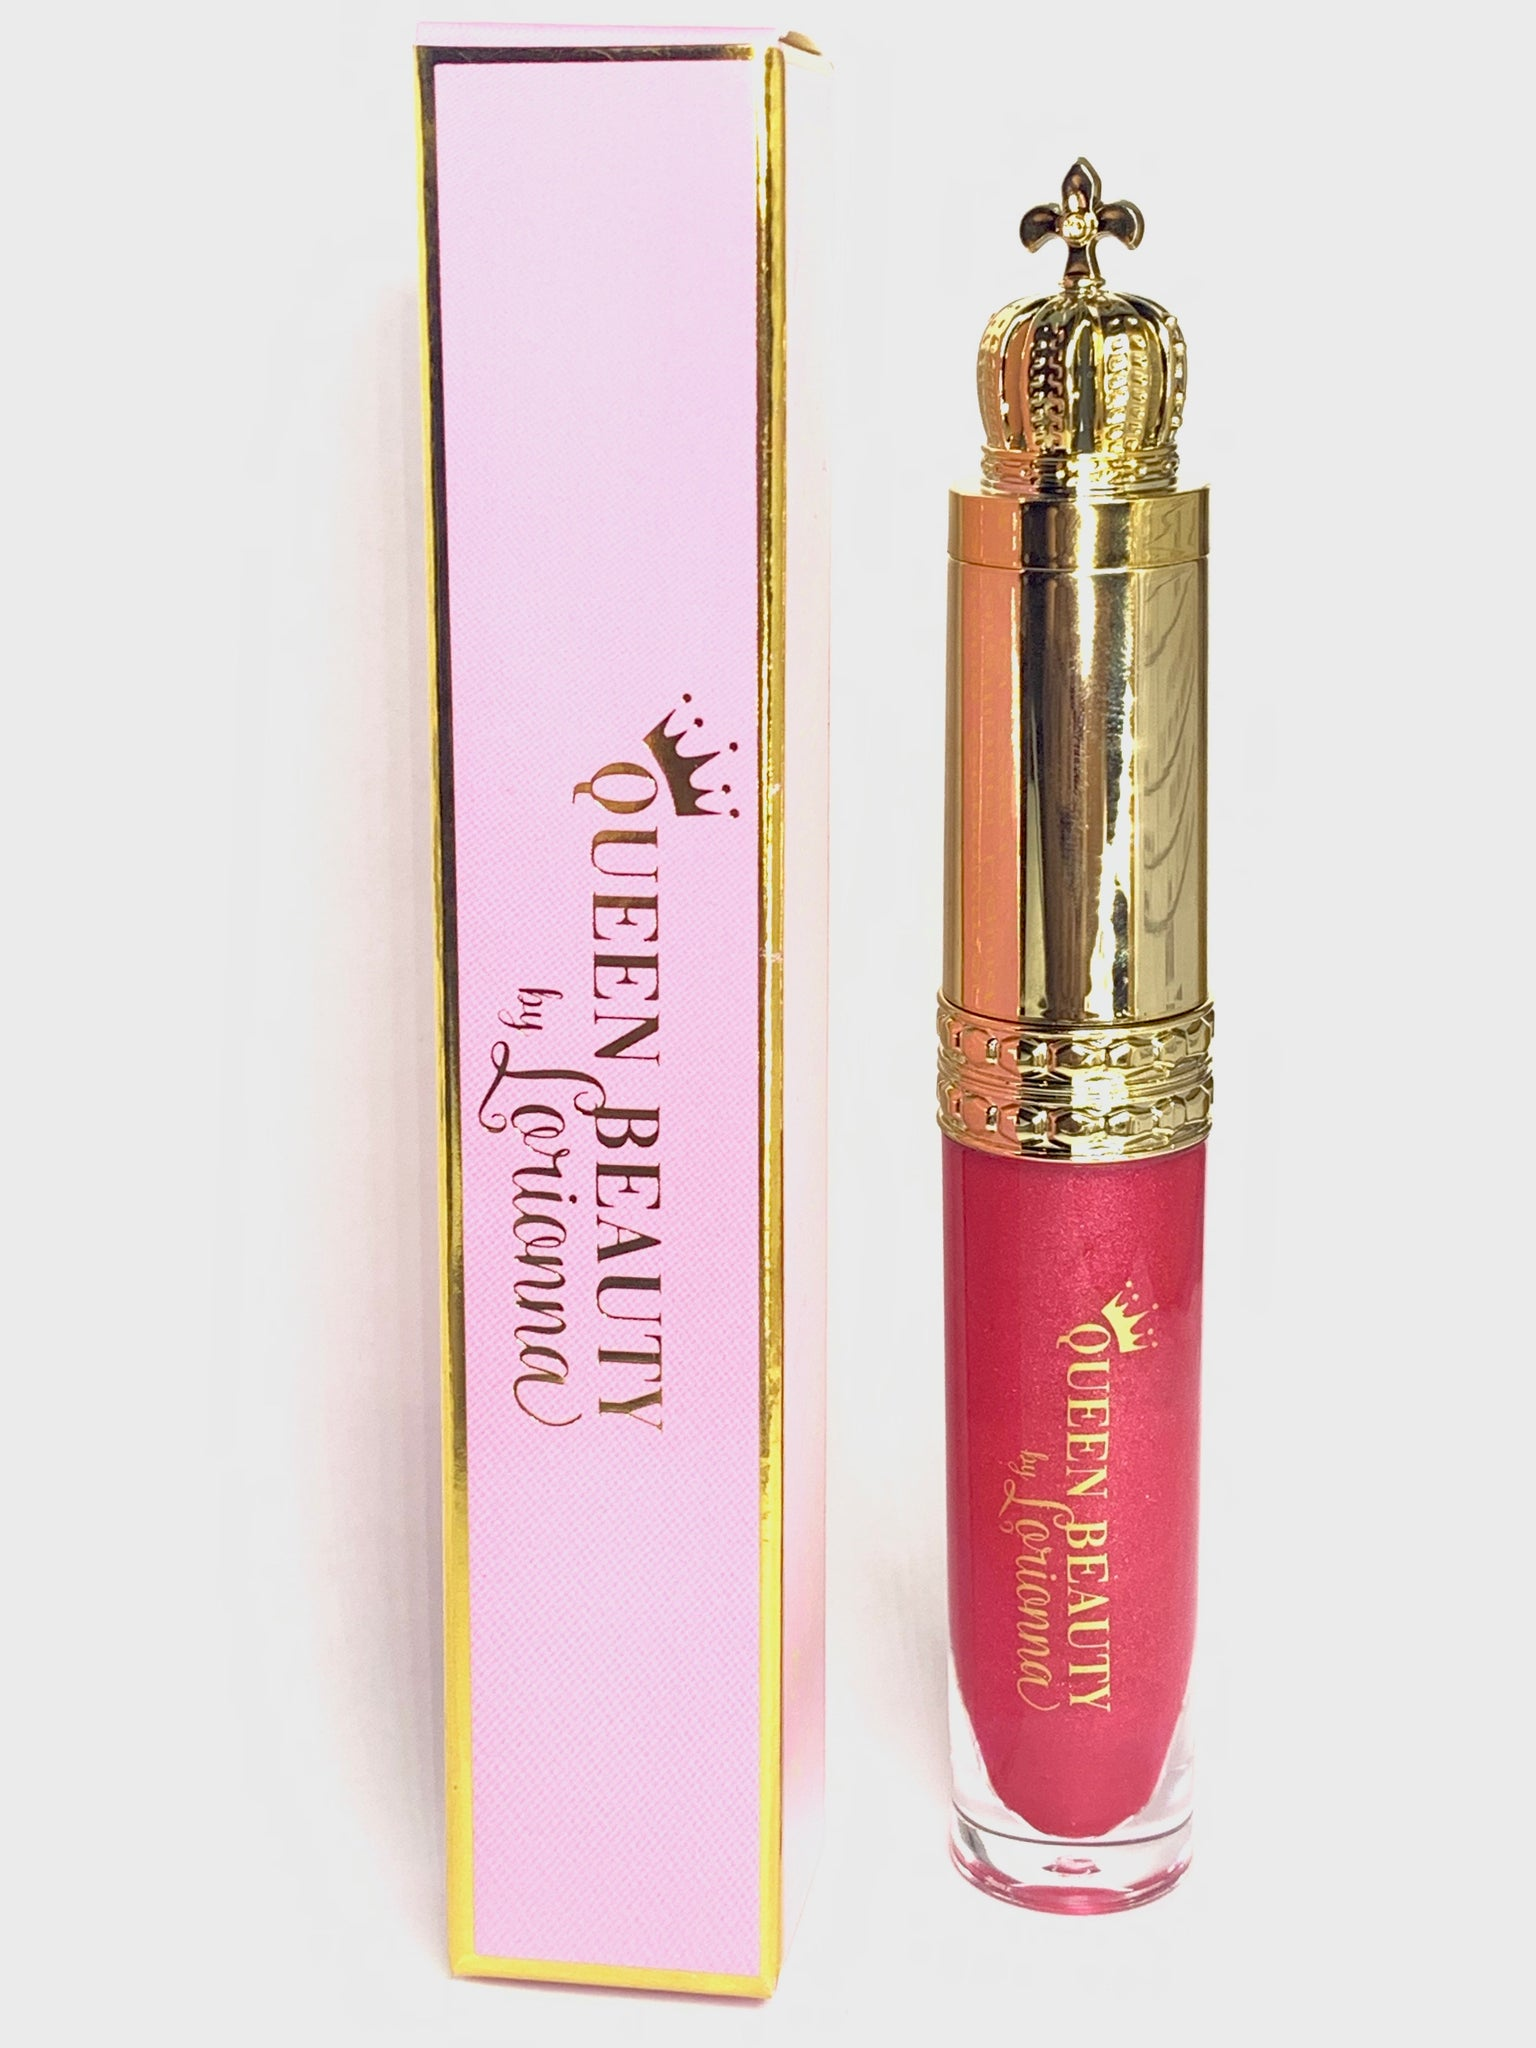 Queendom Lip Gloss